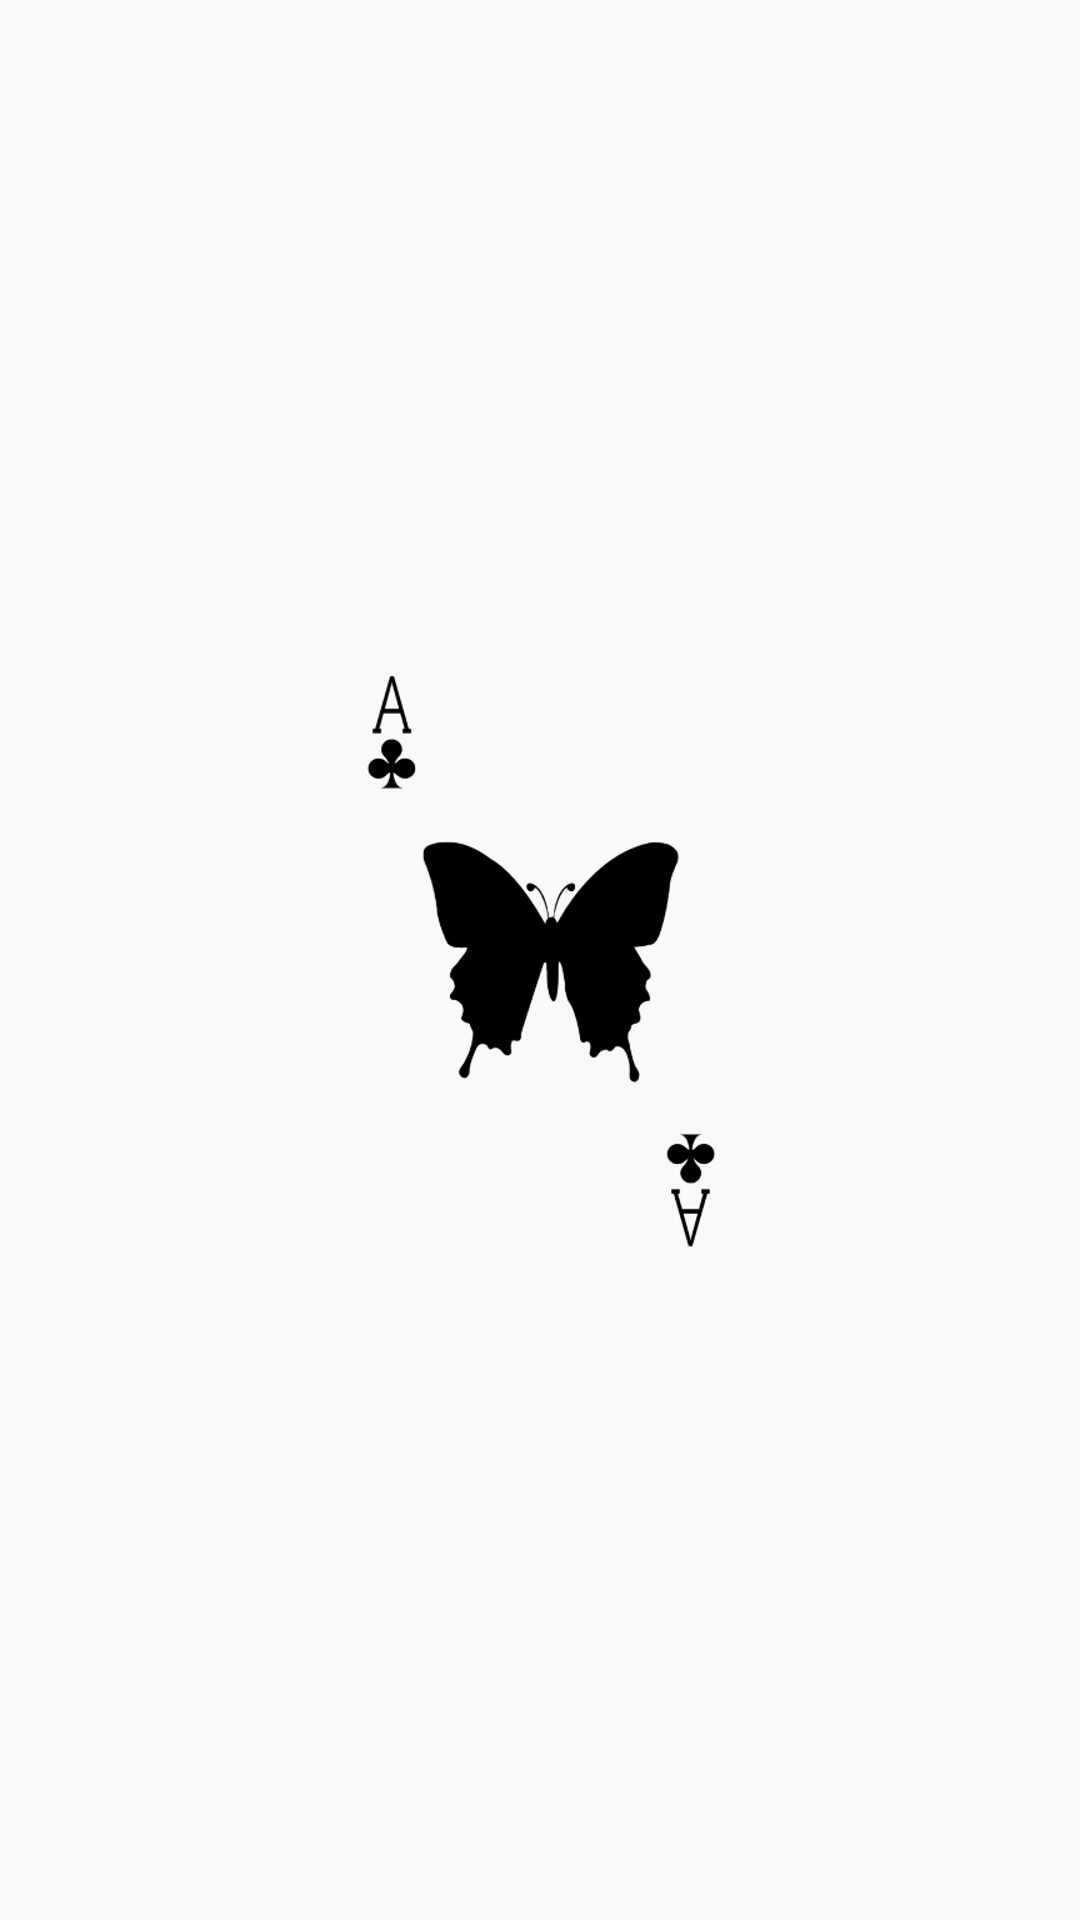 Aesthetic Butterfly Wallpapers Top Free Aesthetic Butterfly Backgrounds Wallpaperaccess